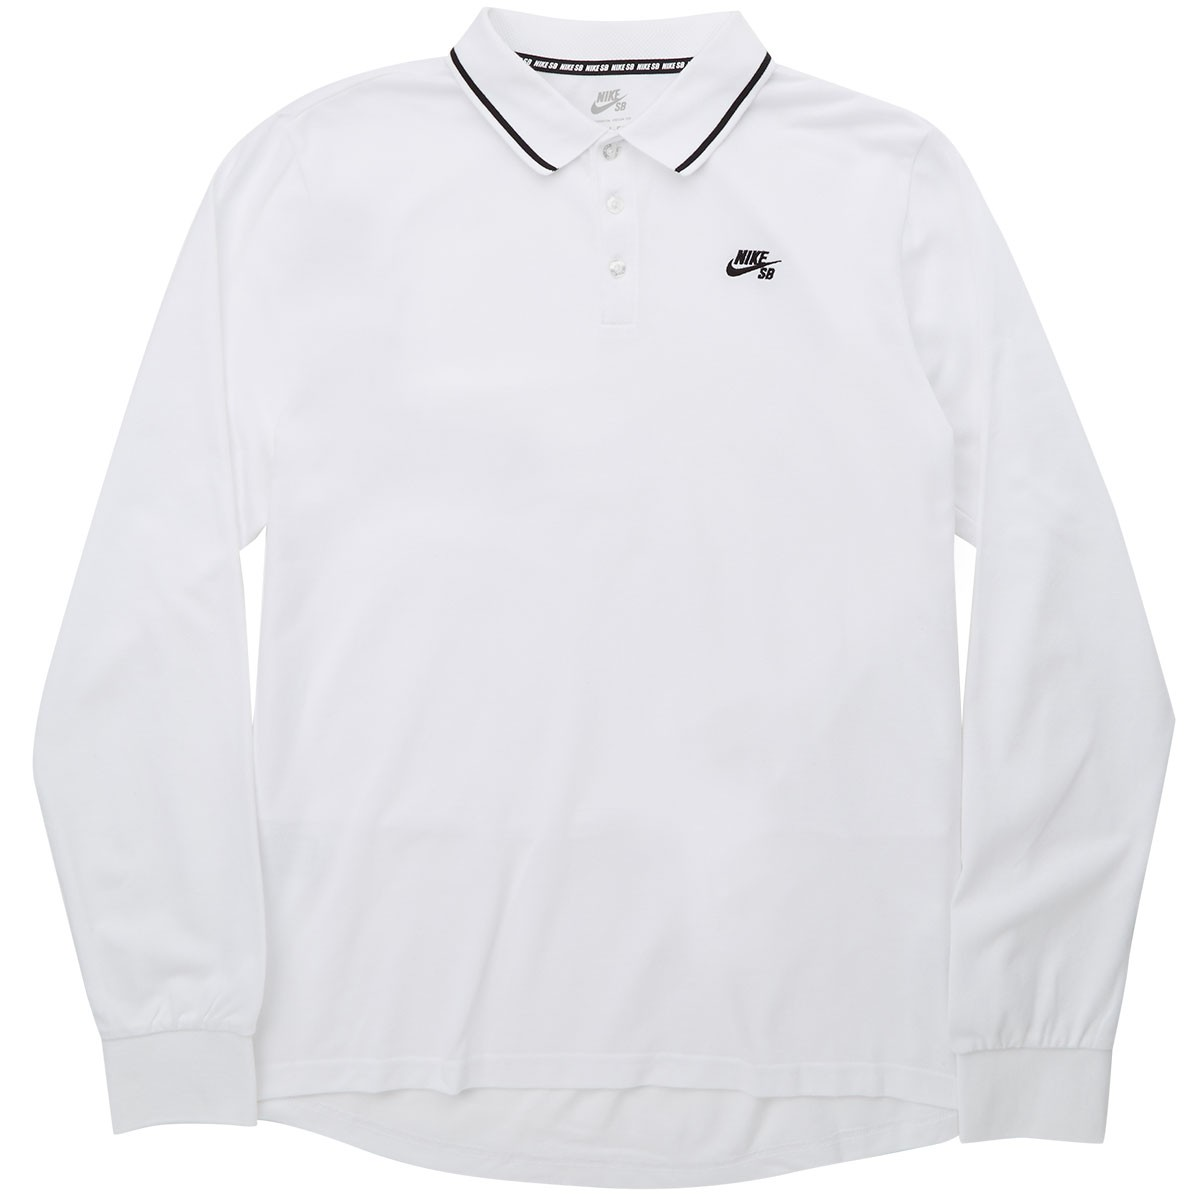 3b290c158708 Nike SB Pique Long Sleeve Polo Shirt - White Black